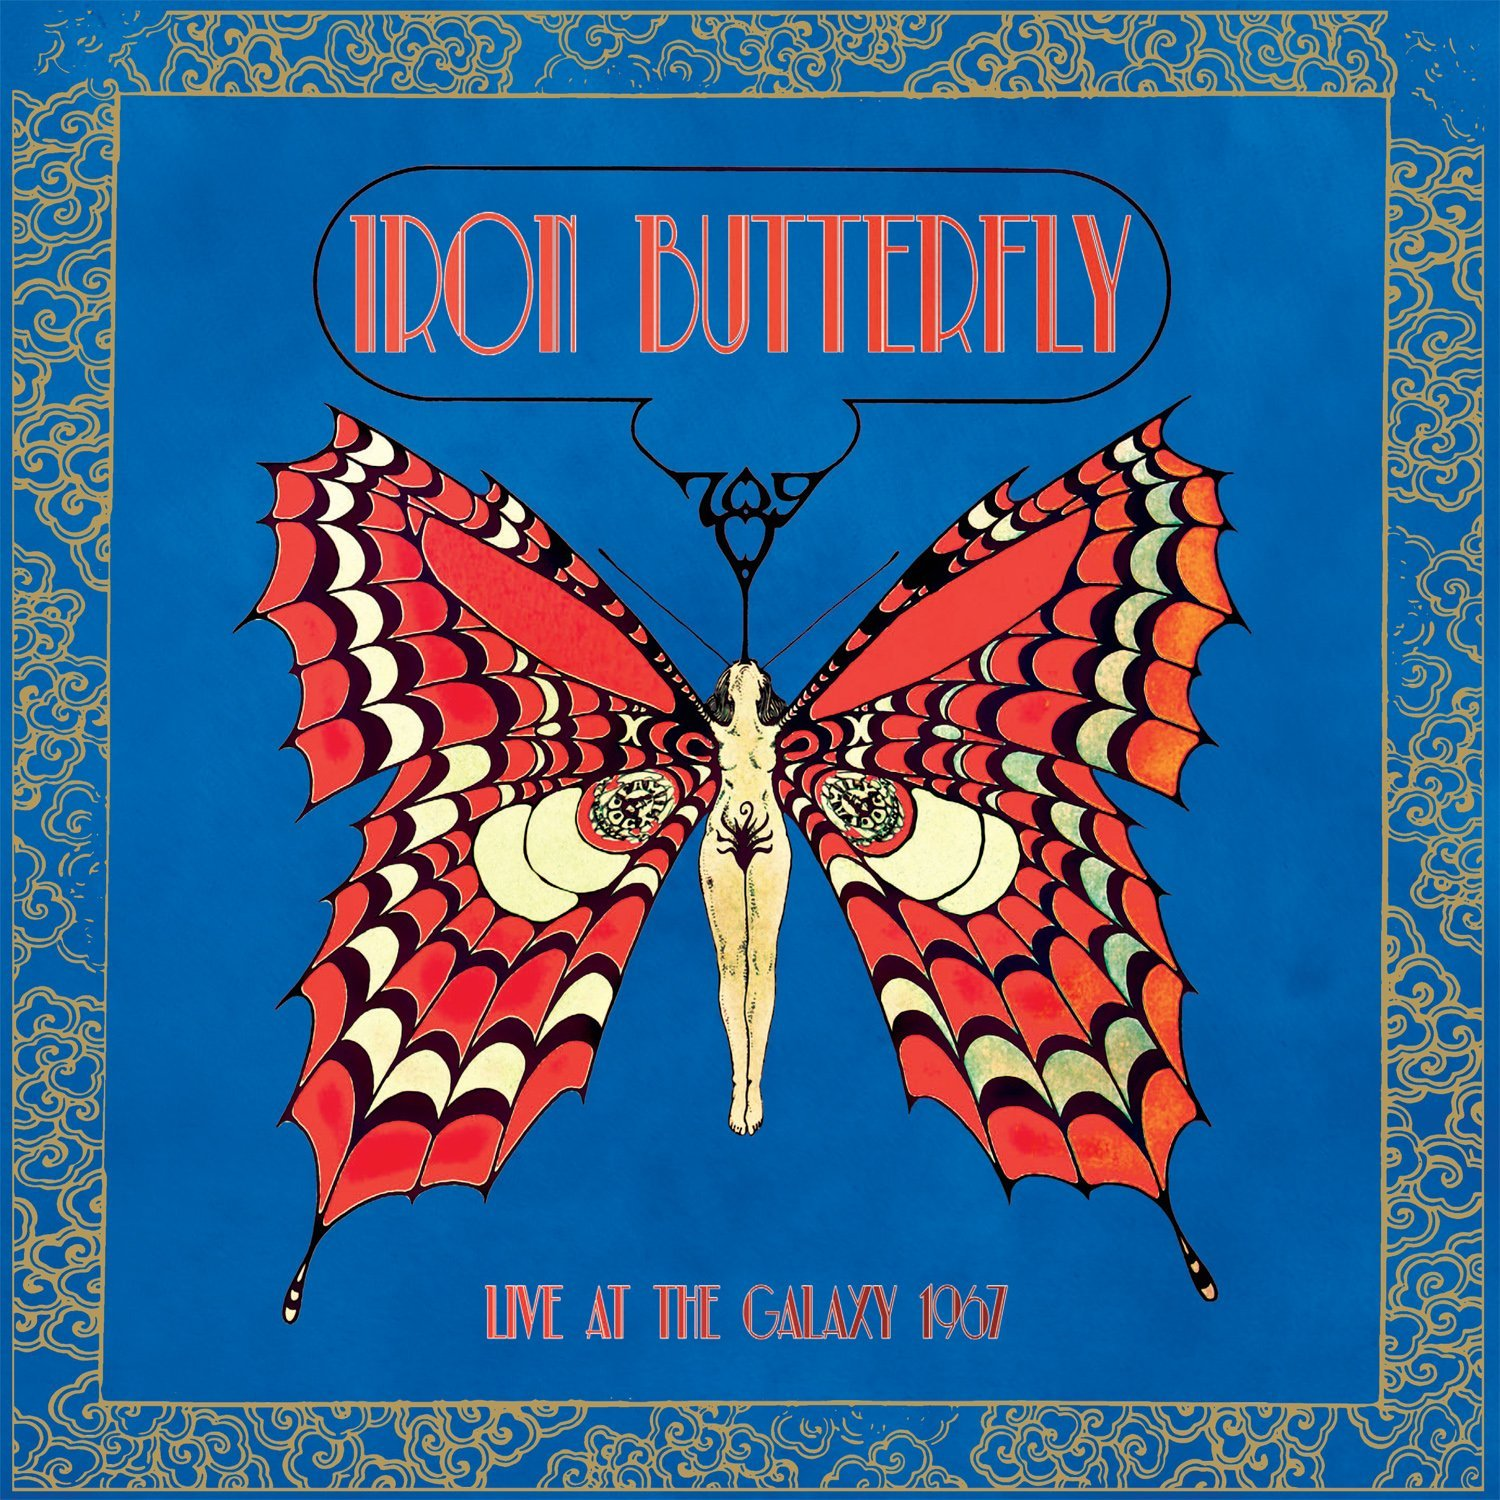 Iron Butterfly — Live at the Galaxy 1967